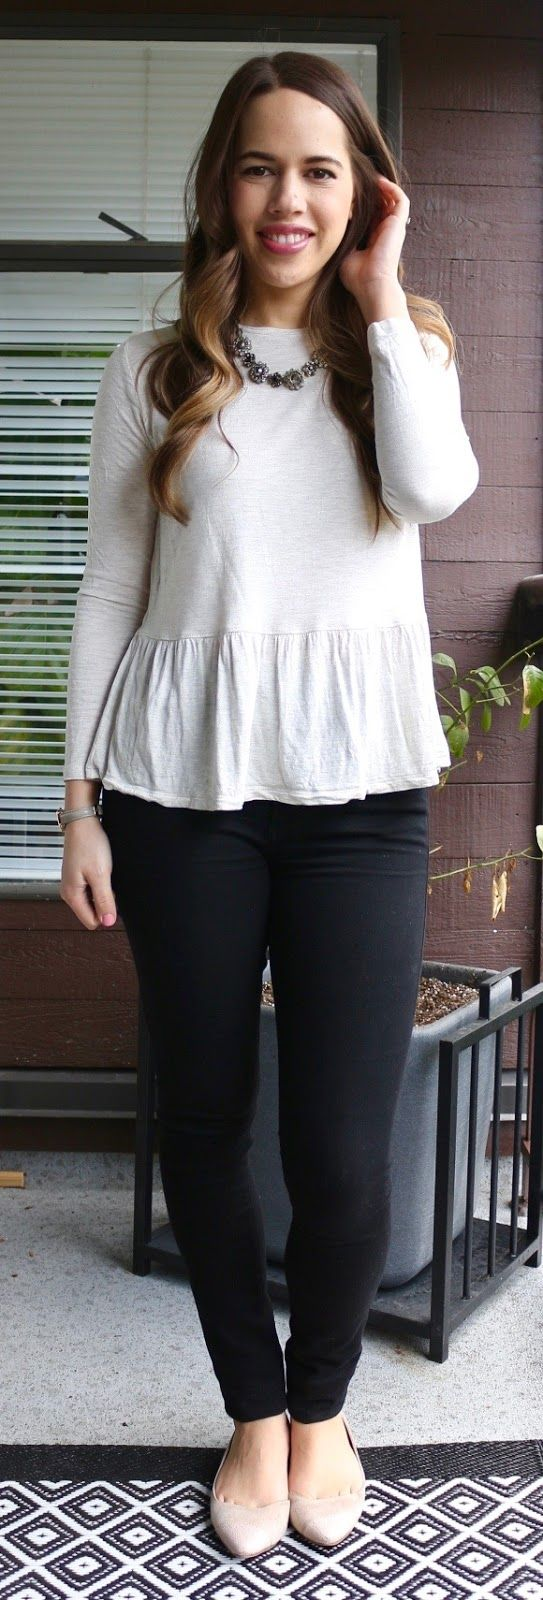 Jules in Flats - Peplum Top and Black Jeans